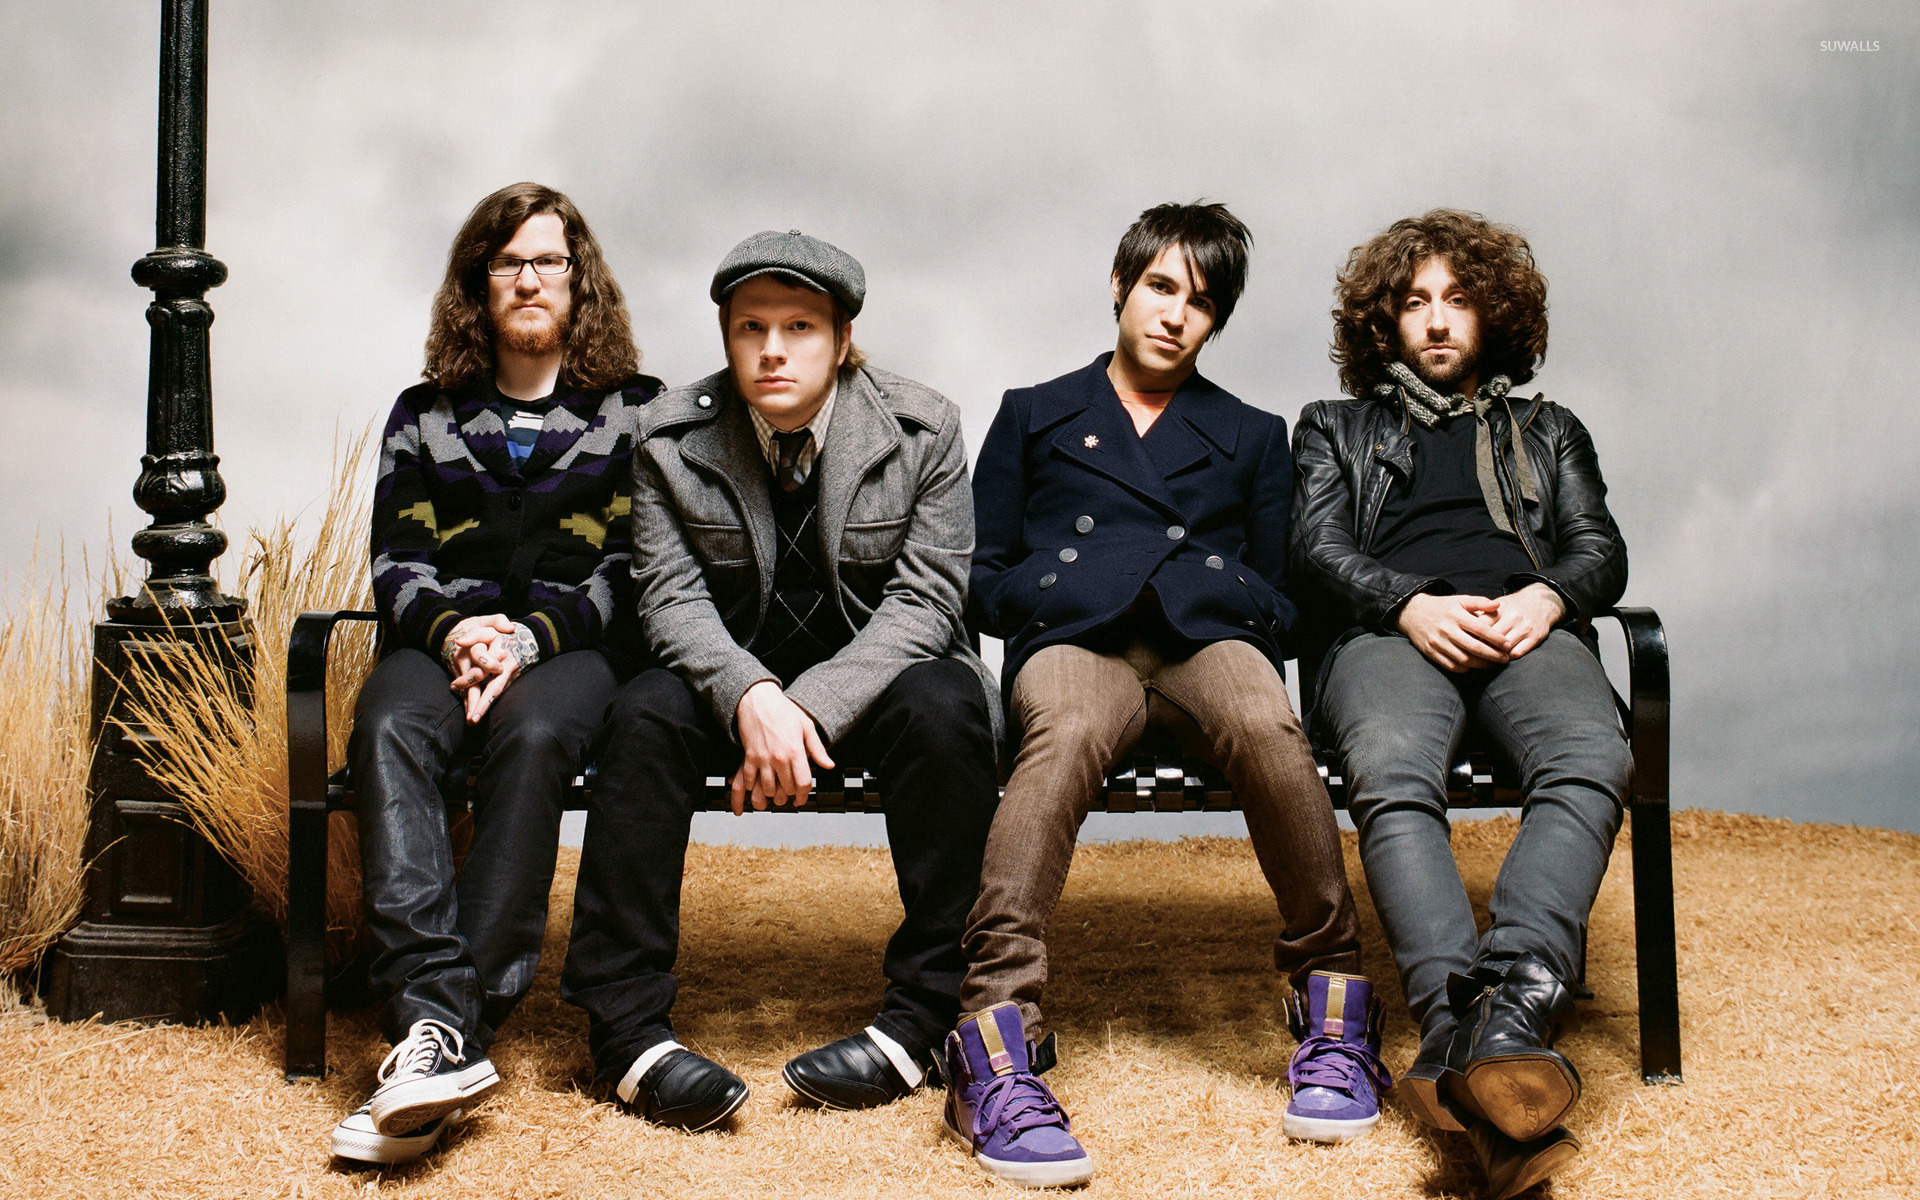 Fall Out Boy Wallpaper Android Fall Out Boy Hd Wallpapers